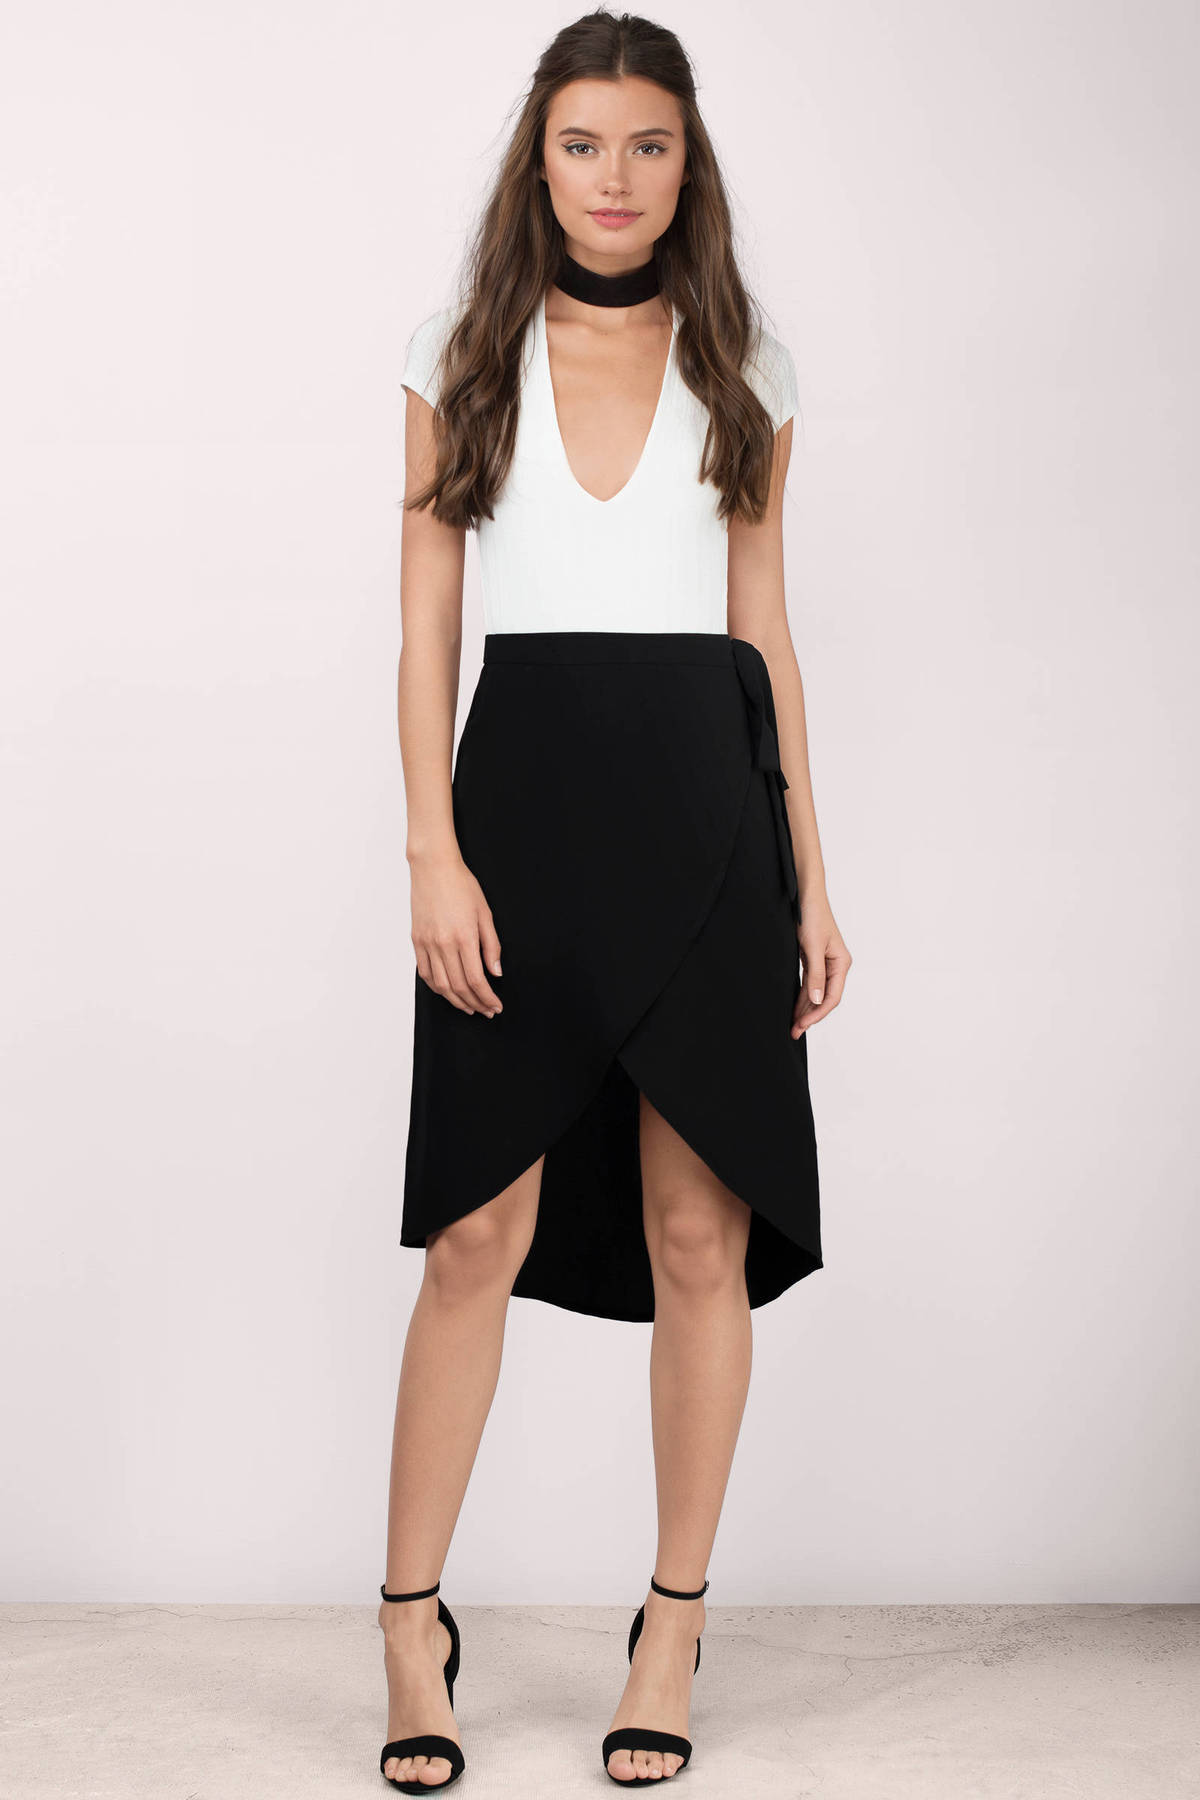 Cute Black Skirt - Black Skirt - Midi Skirt - $48.00